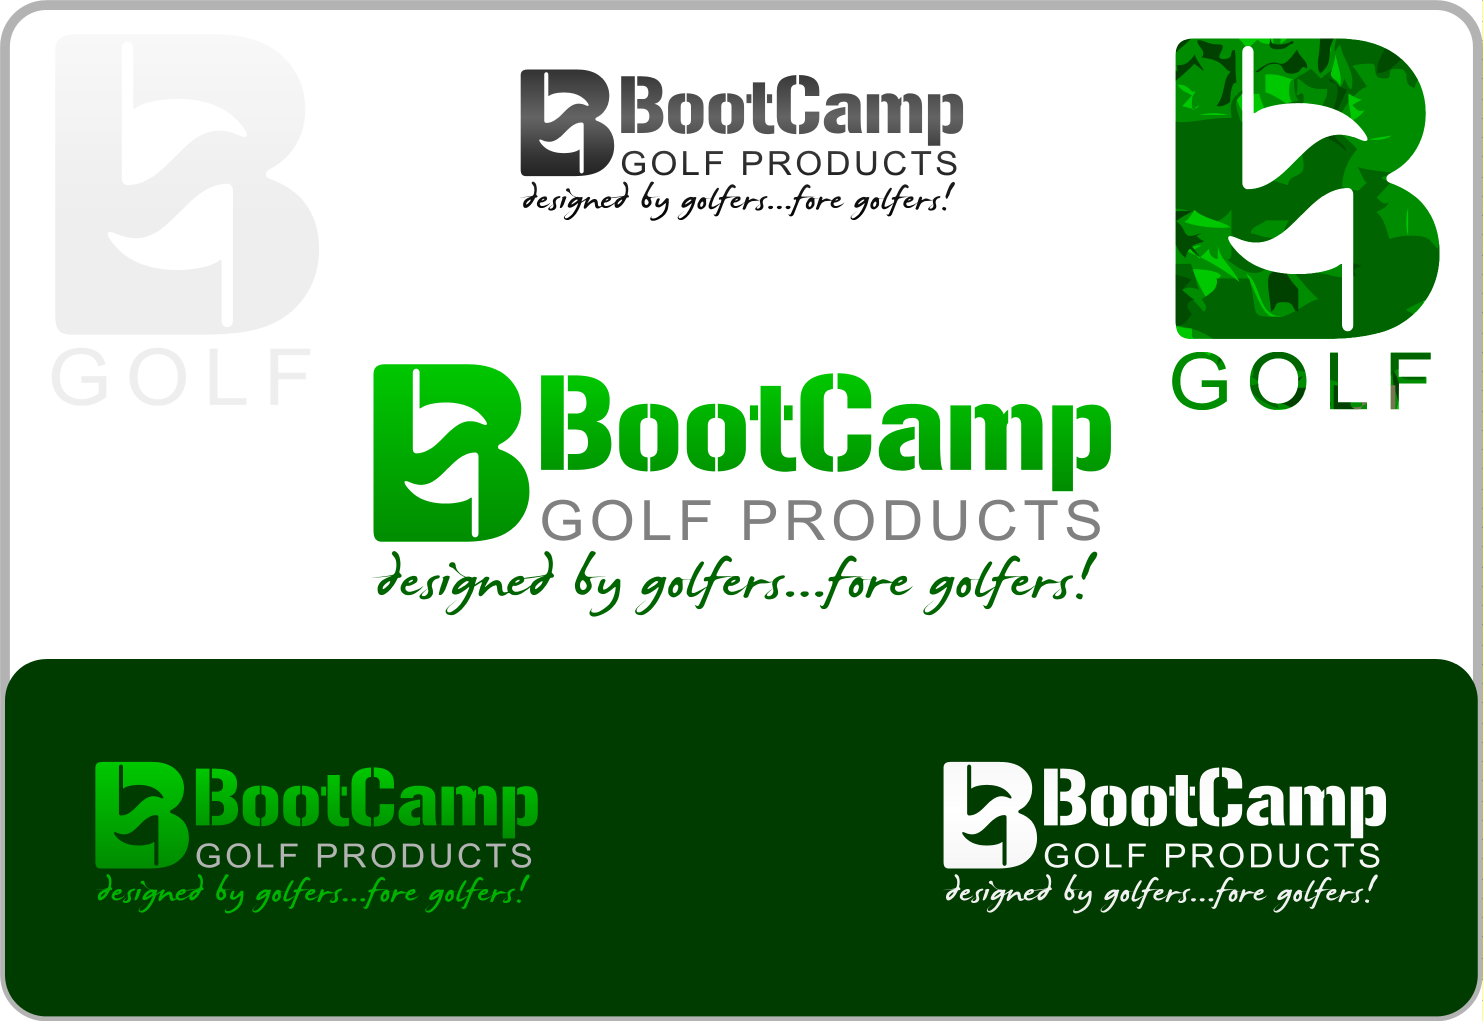 Boot Camp Golf Products needs a new logo